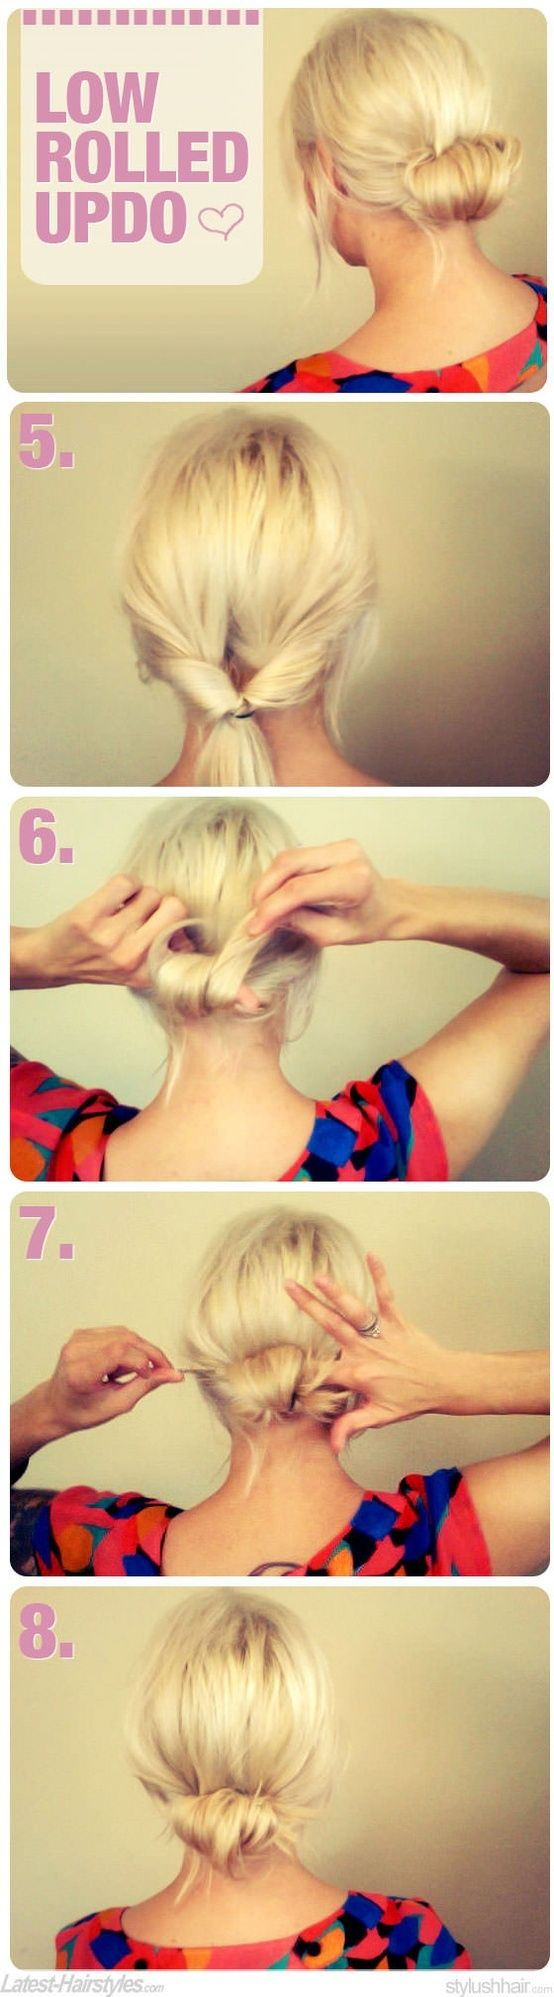 Lazy Sunday Hair: A Whole New Hairstyle for the Holidays--Just Flip Your Bun Instead of Rolling It: